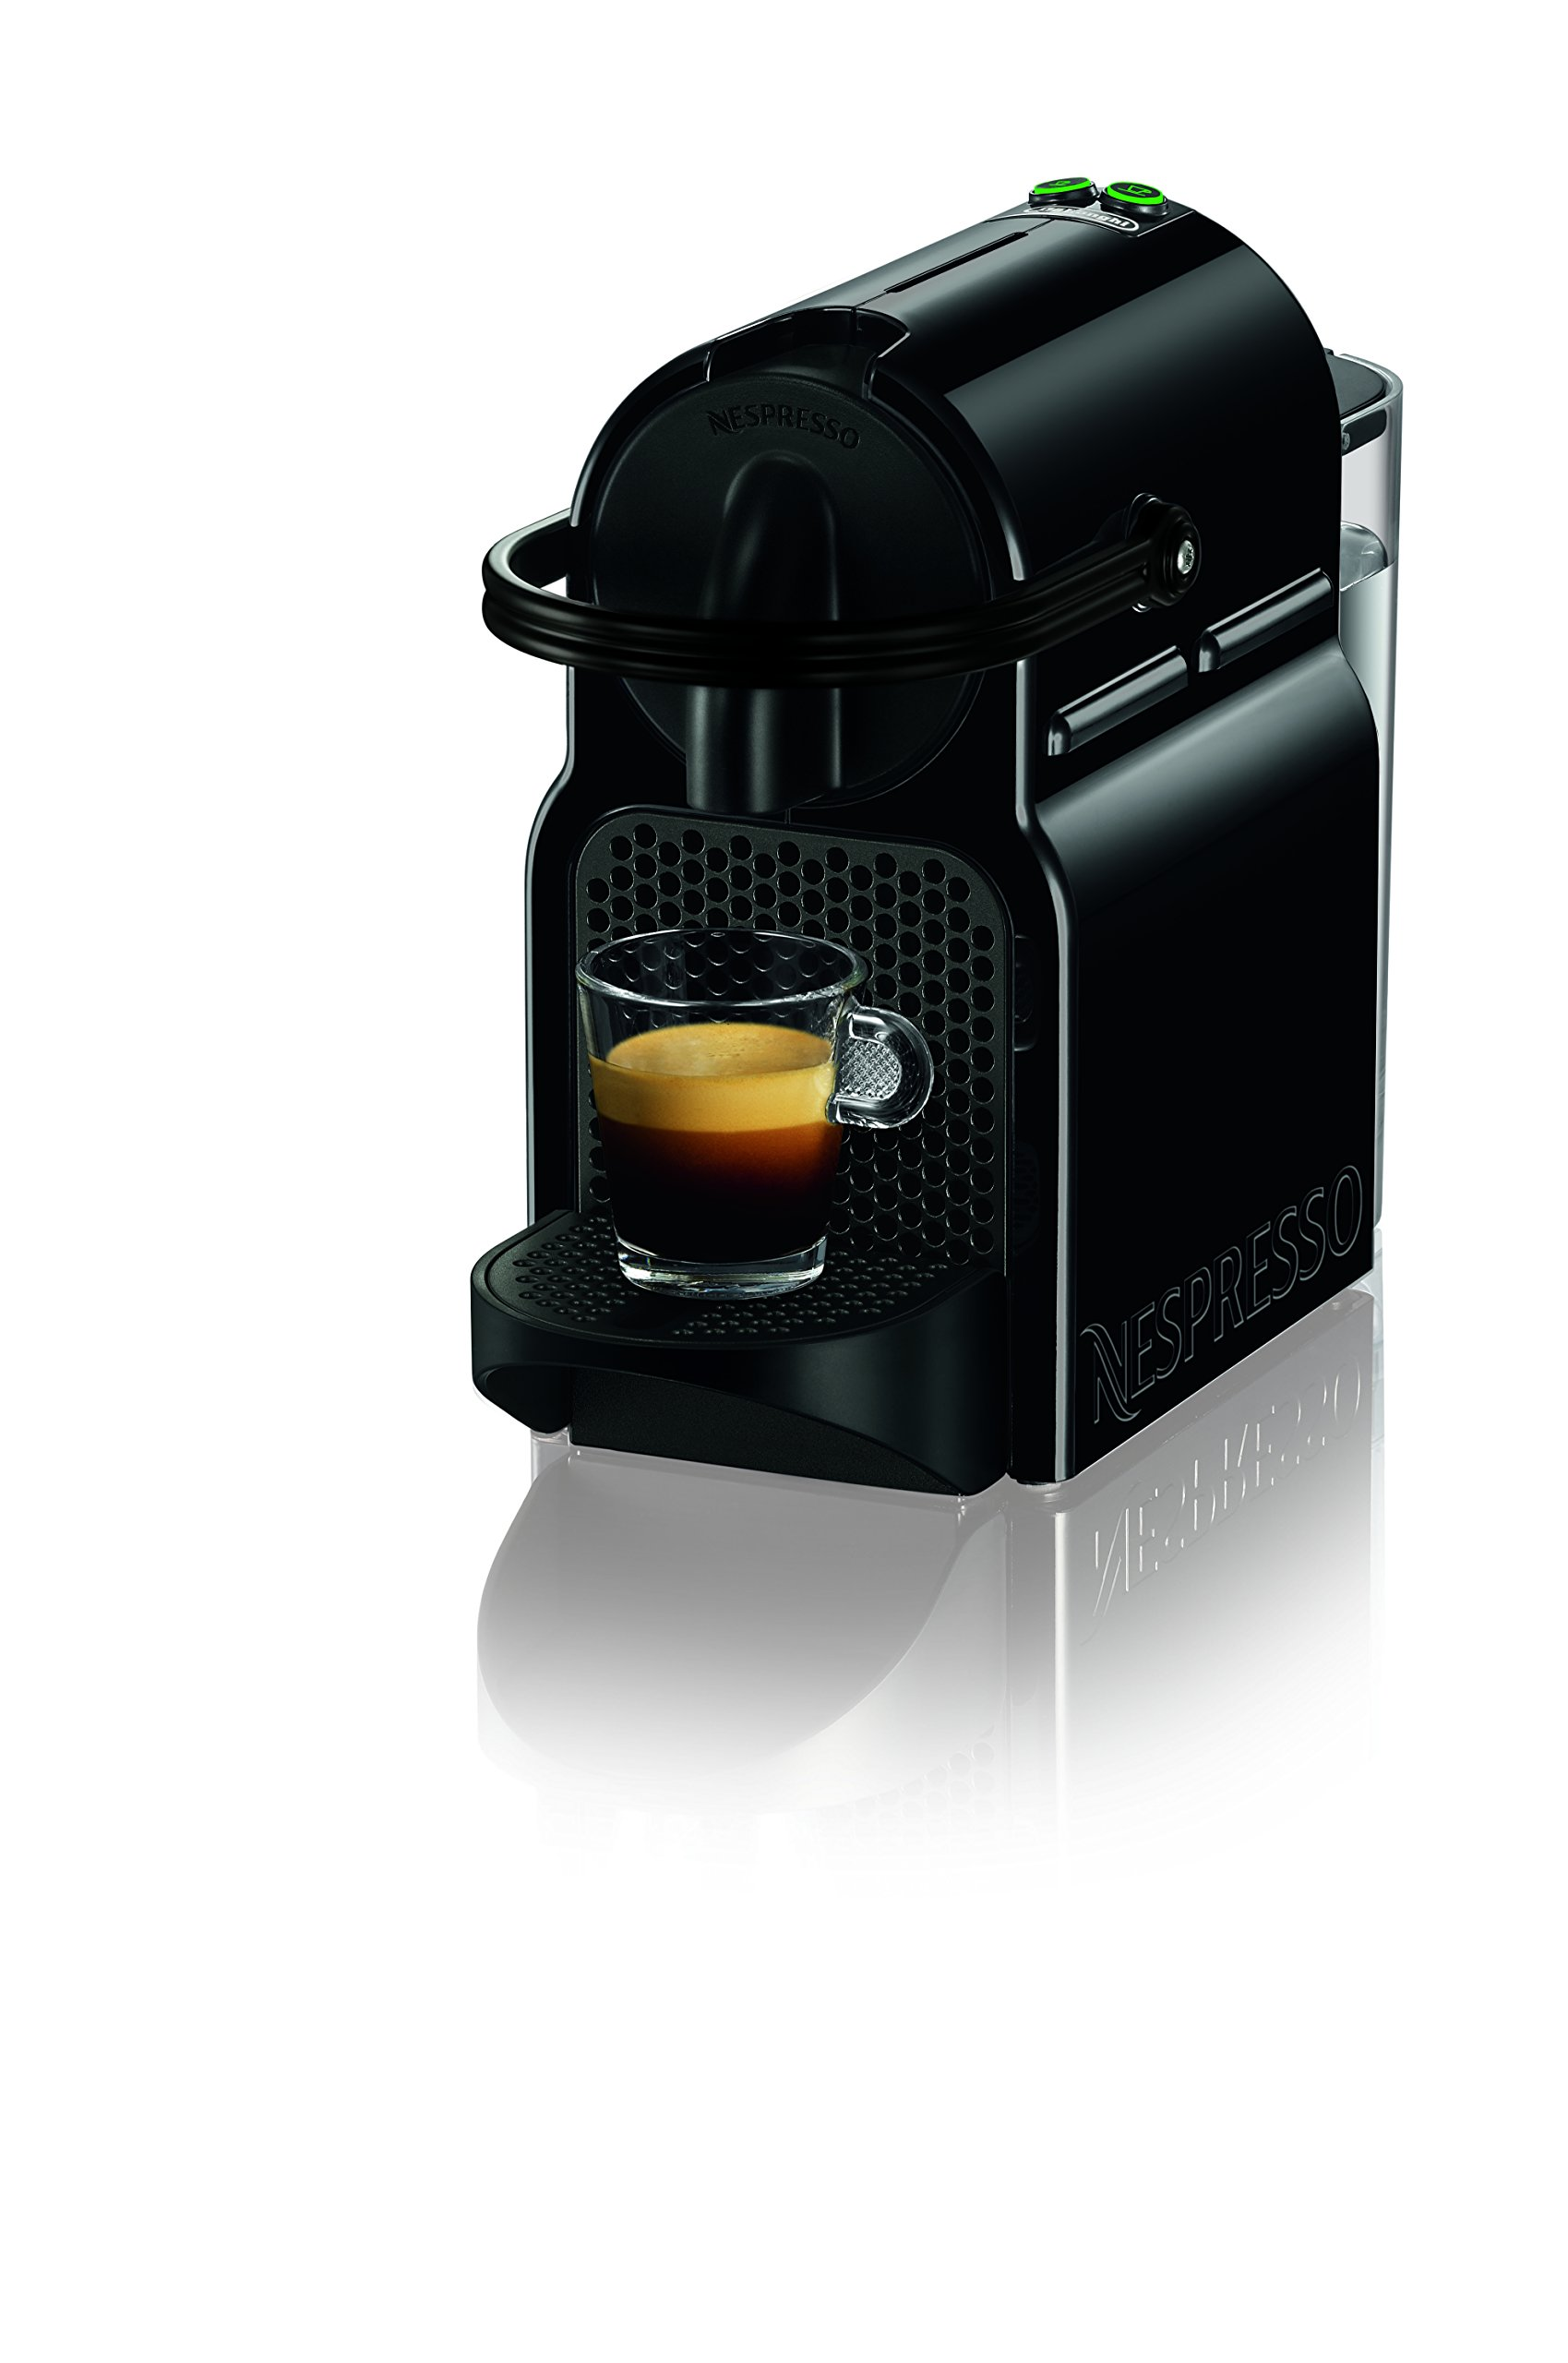 Nespresso by De'Longhi EN80B Original Espresso Machine by De'Longhi, 12.6 x 4.7 x 9 inches, Black by Nespresso by De'Longhi